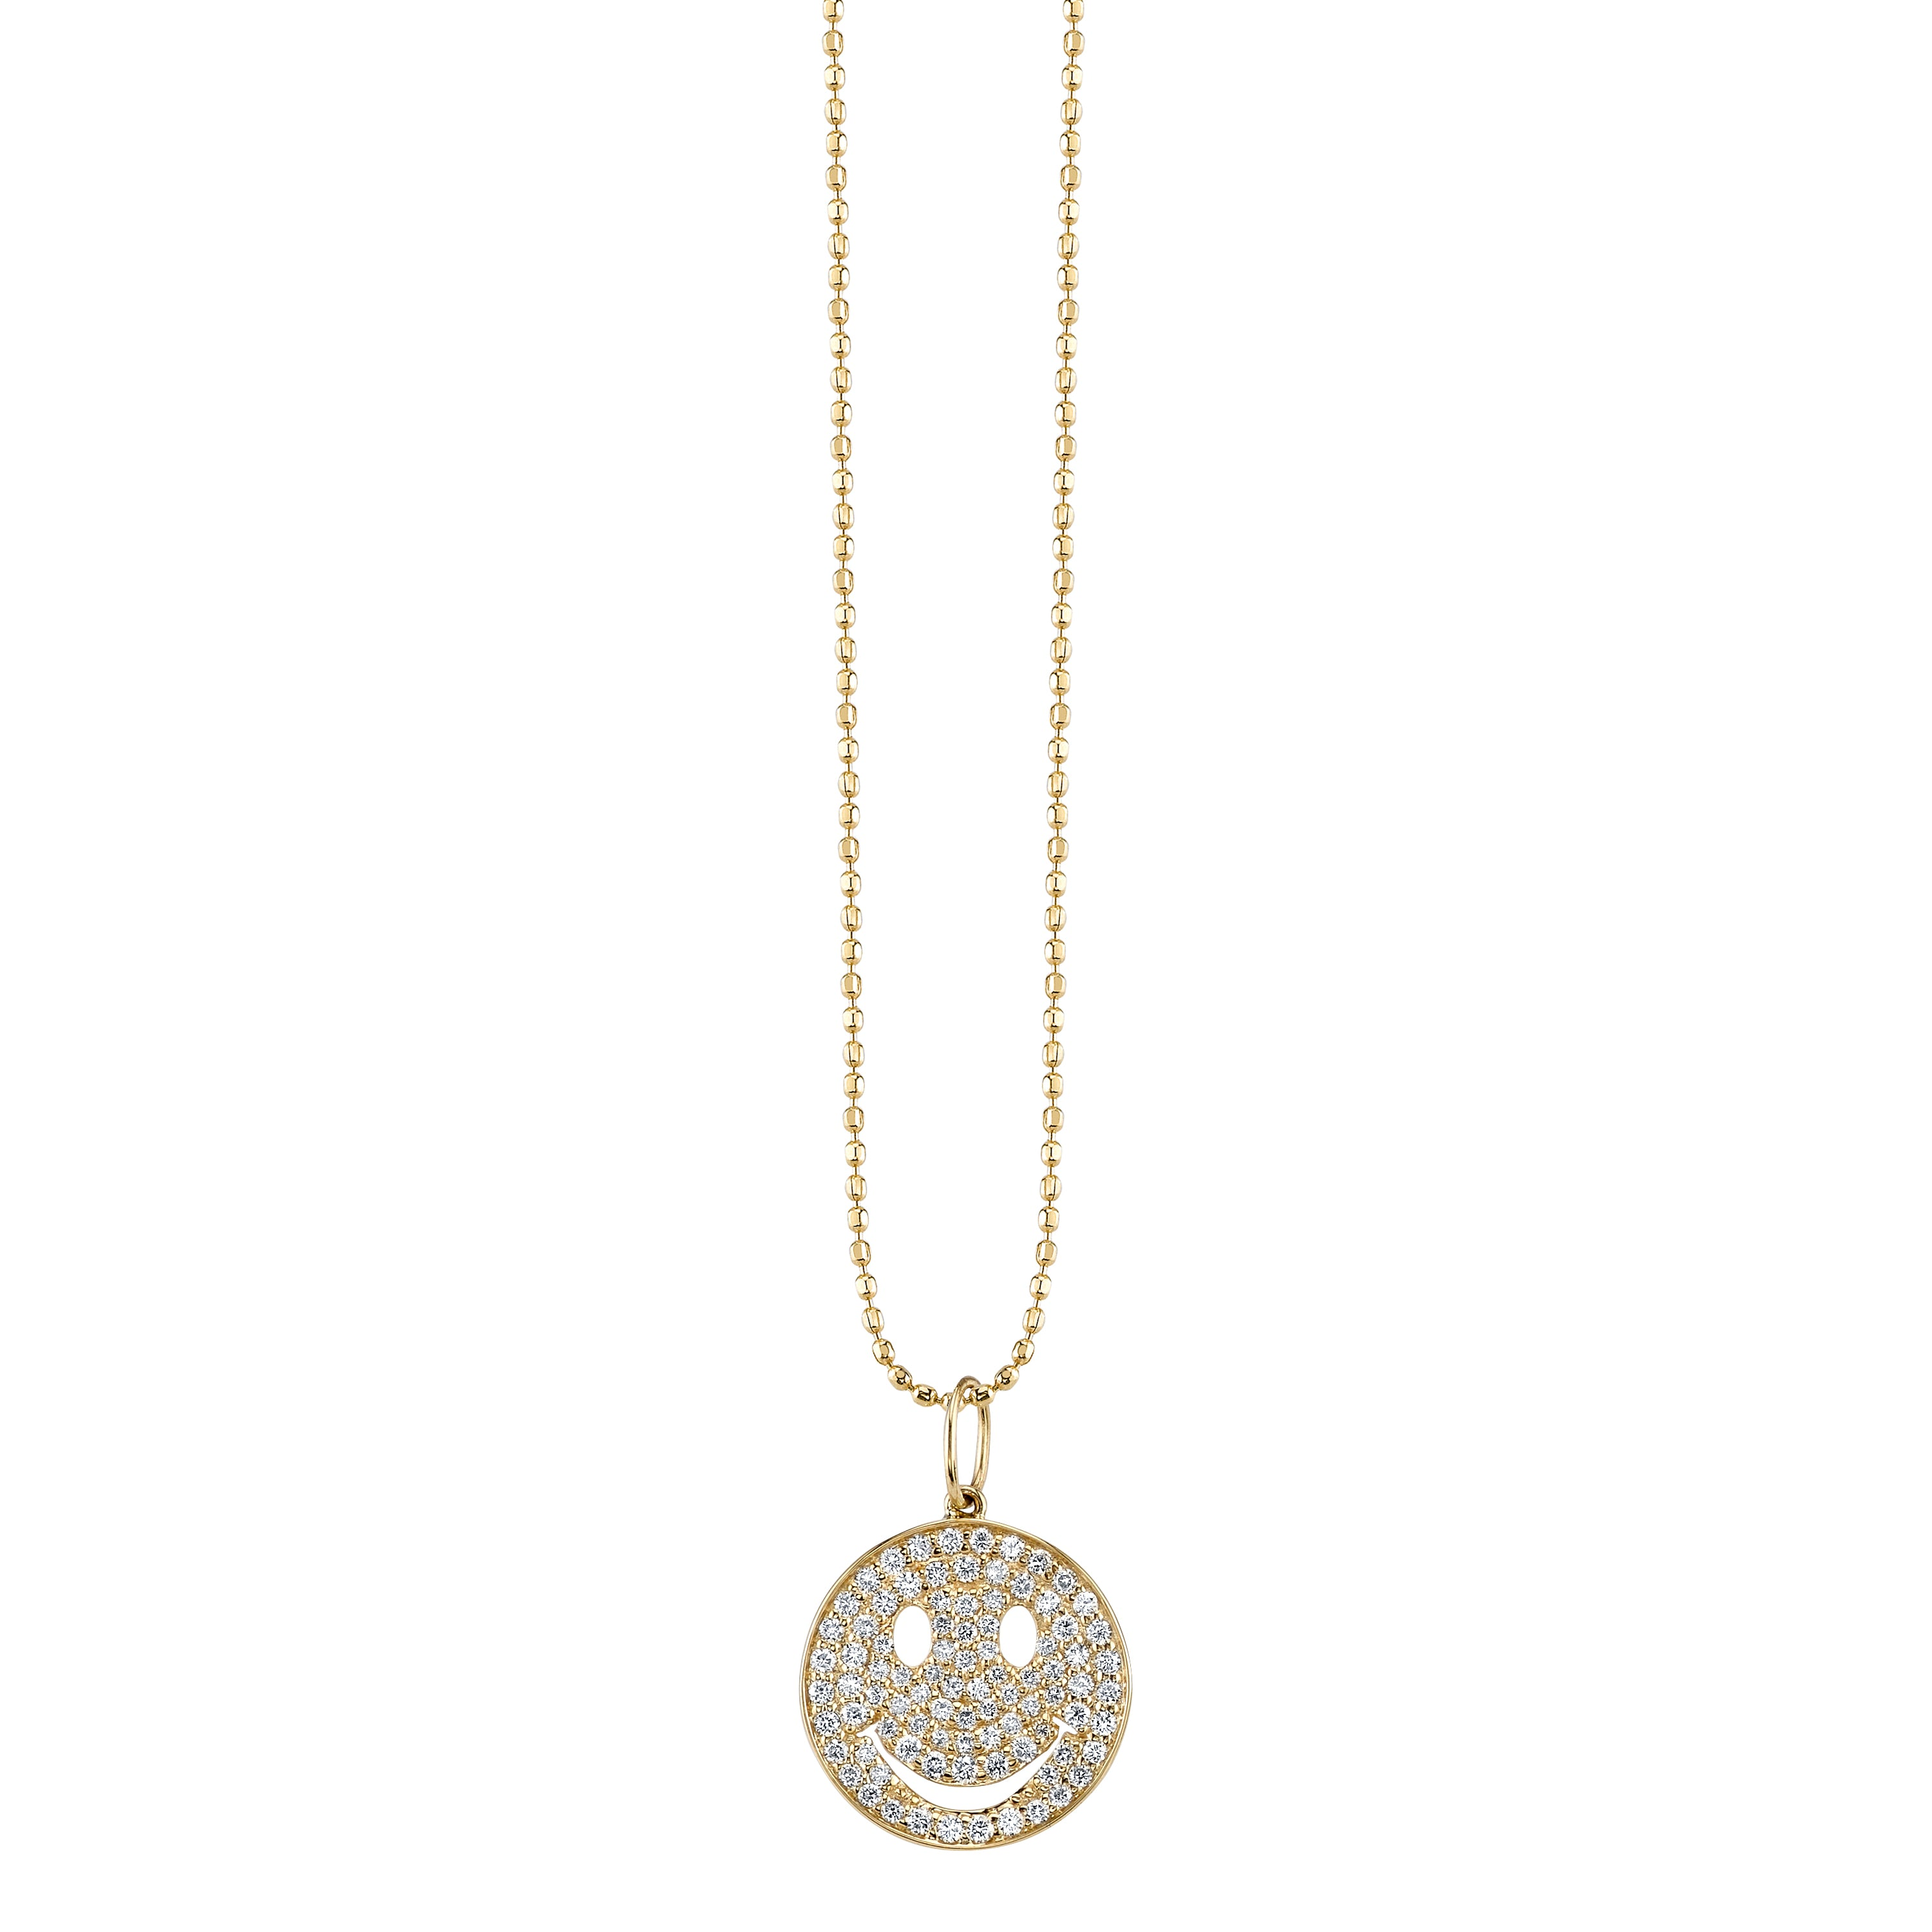 Medium Gold & Pavé Diamond Happy Face Necklace